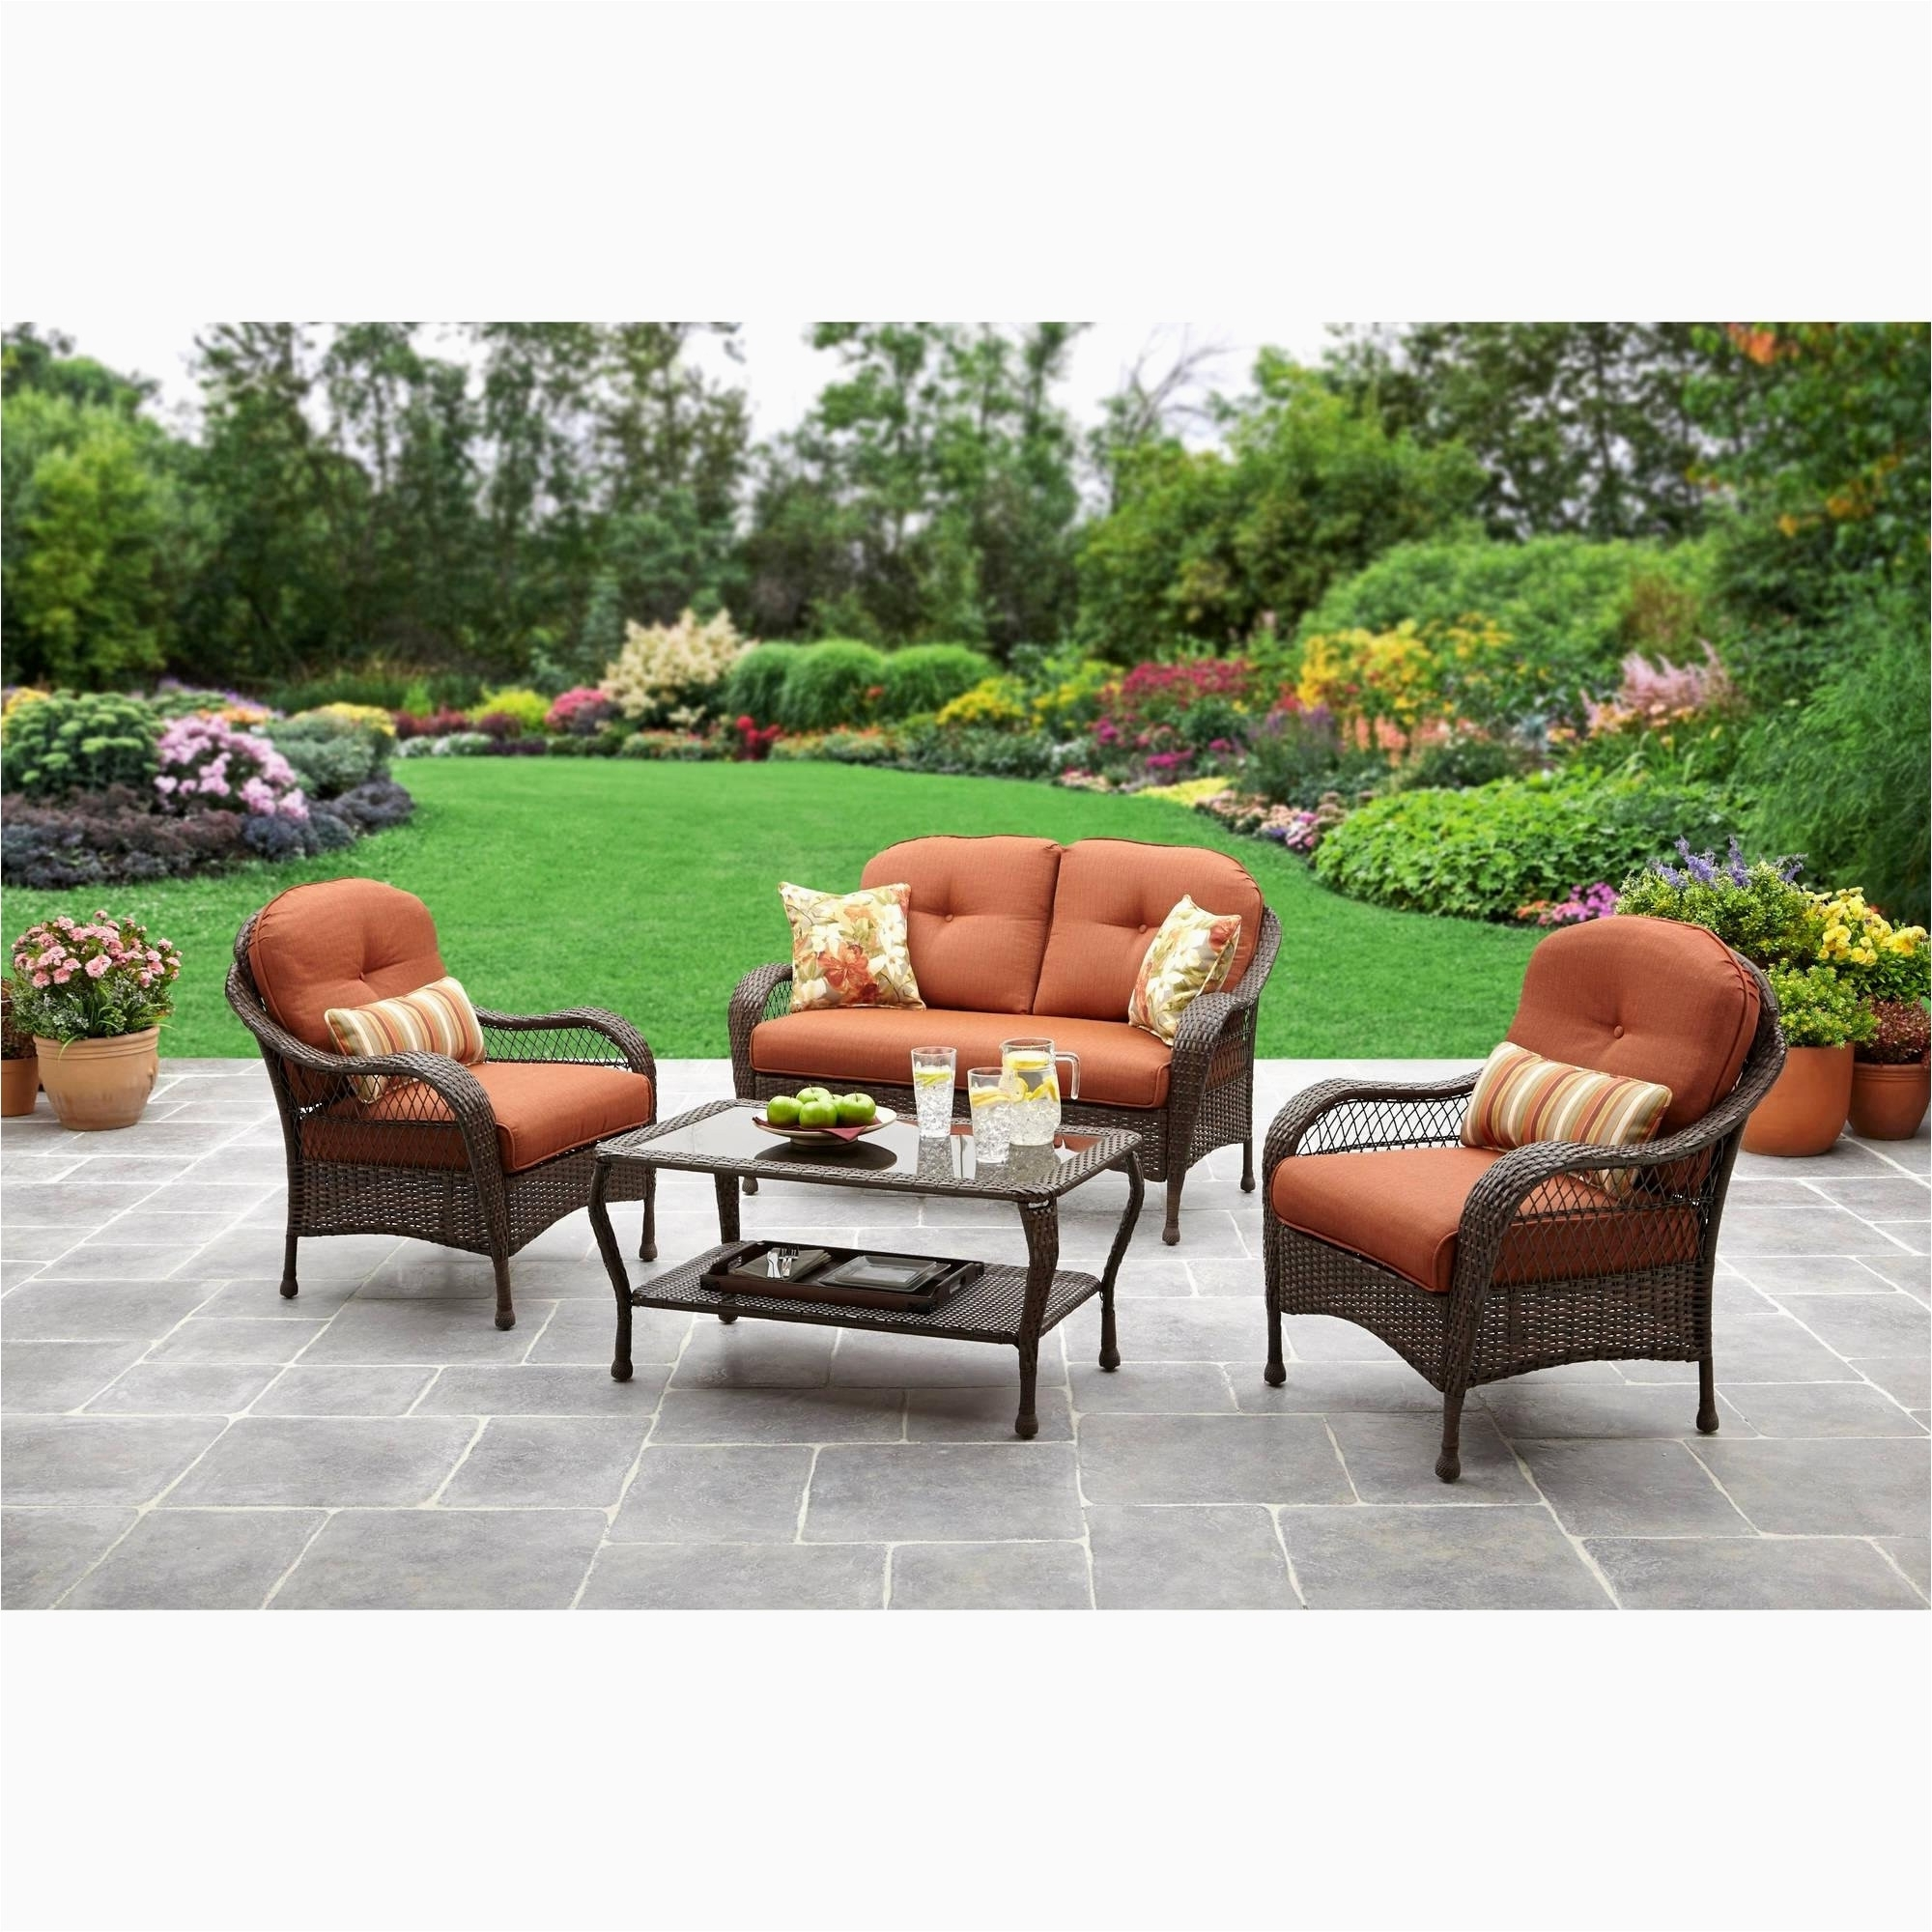 Favorite Sams Club Patio Furniture Patio Furniture Walmart Target Patio With Target Patio Furniture Conversation Sets (View 9 of 20)